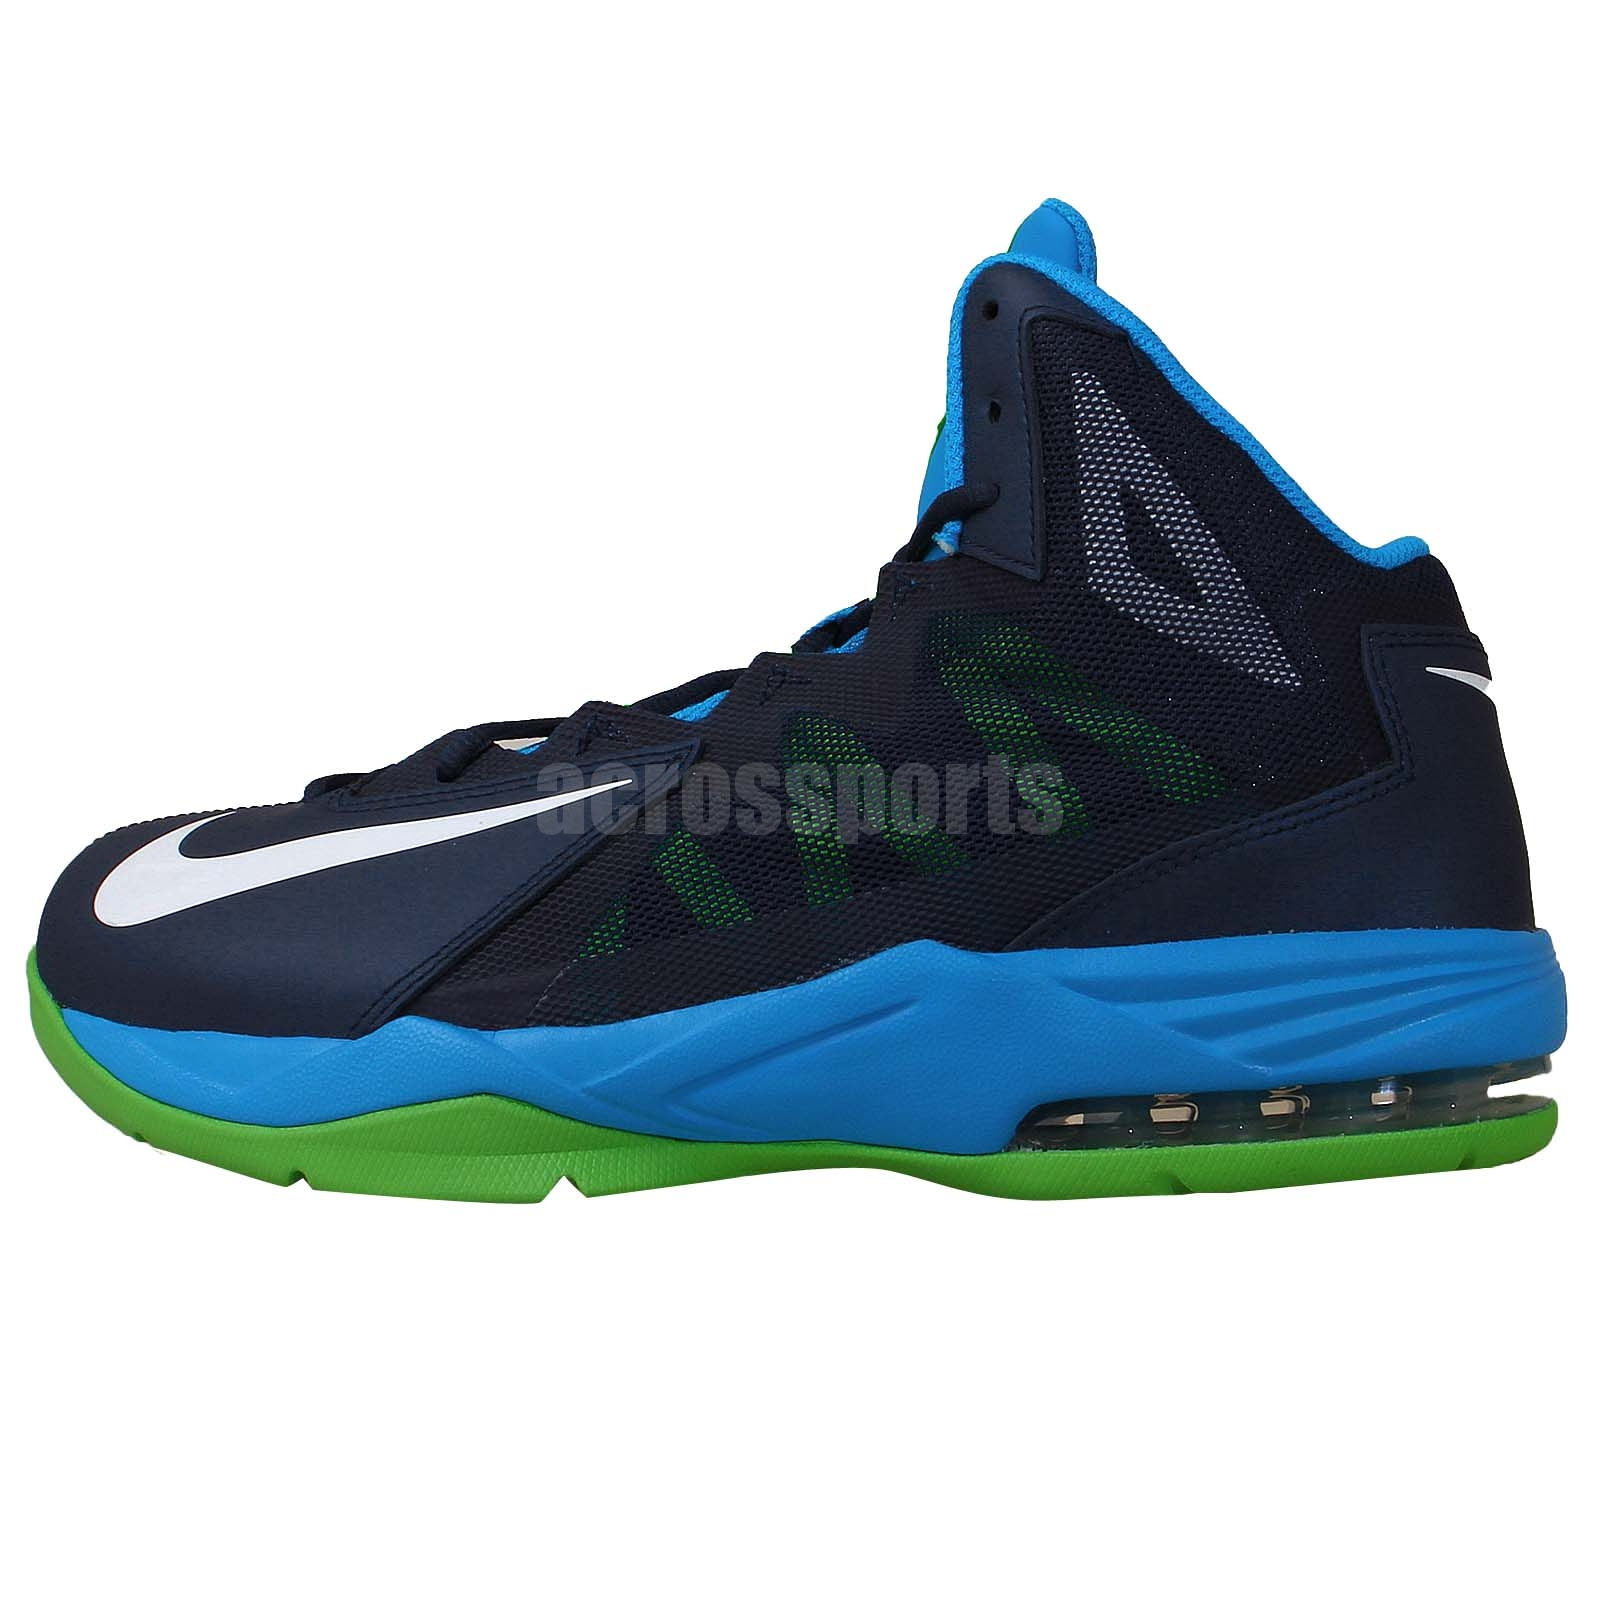 nike air max stutter step 2 navy blue green 2014 mens